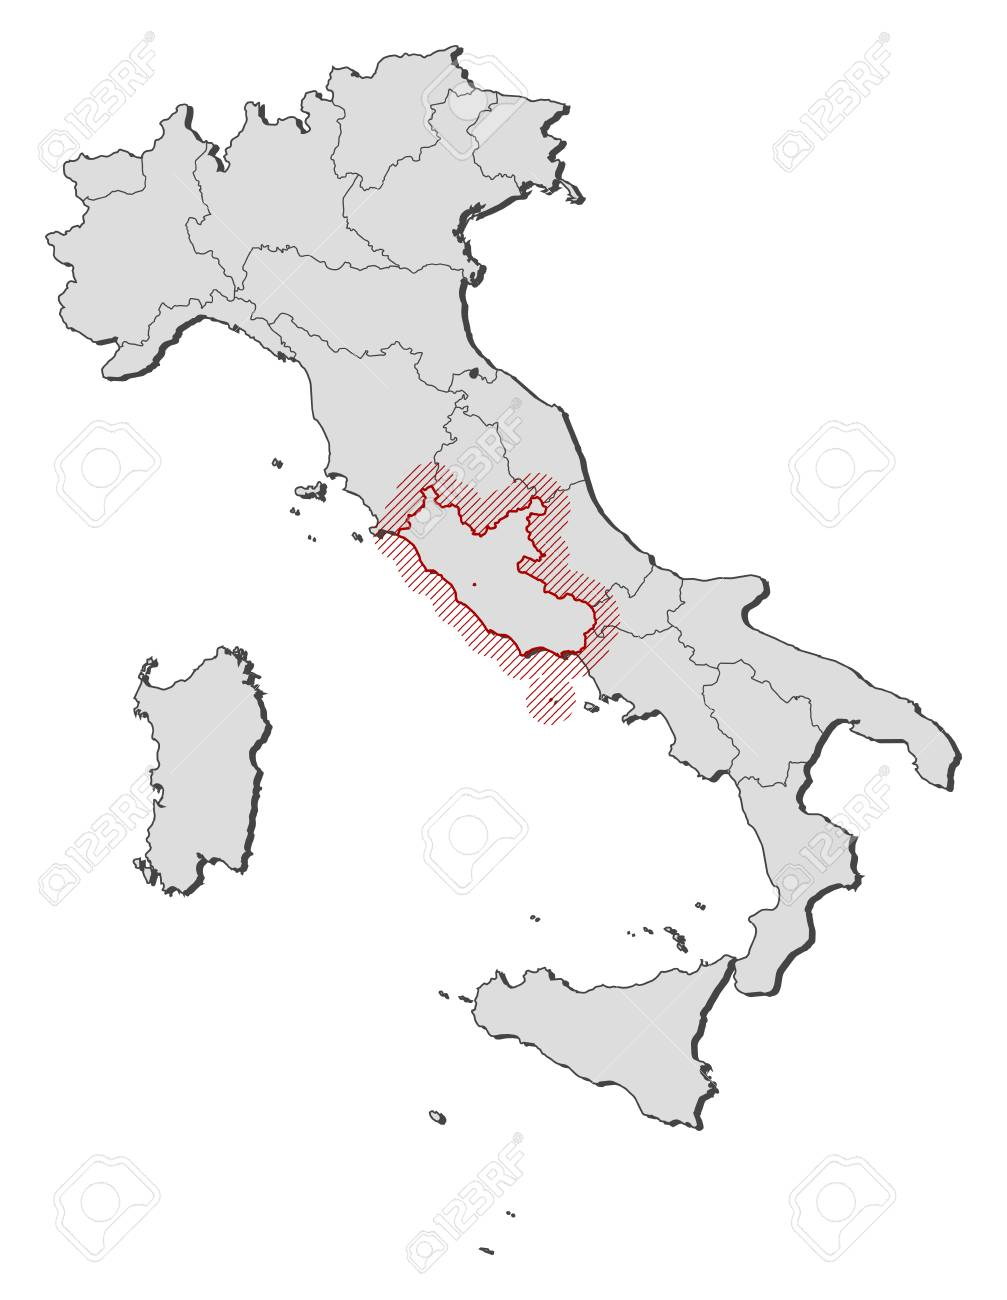 Map Of Italy With The Provinces Lazio Is Highlighted By A Hatching